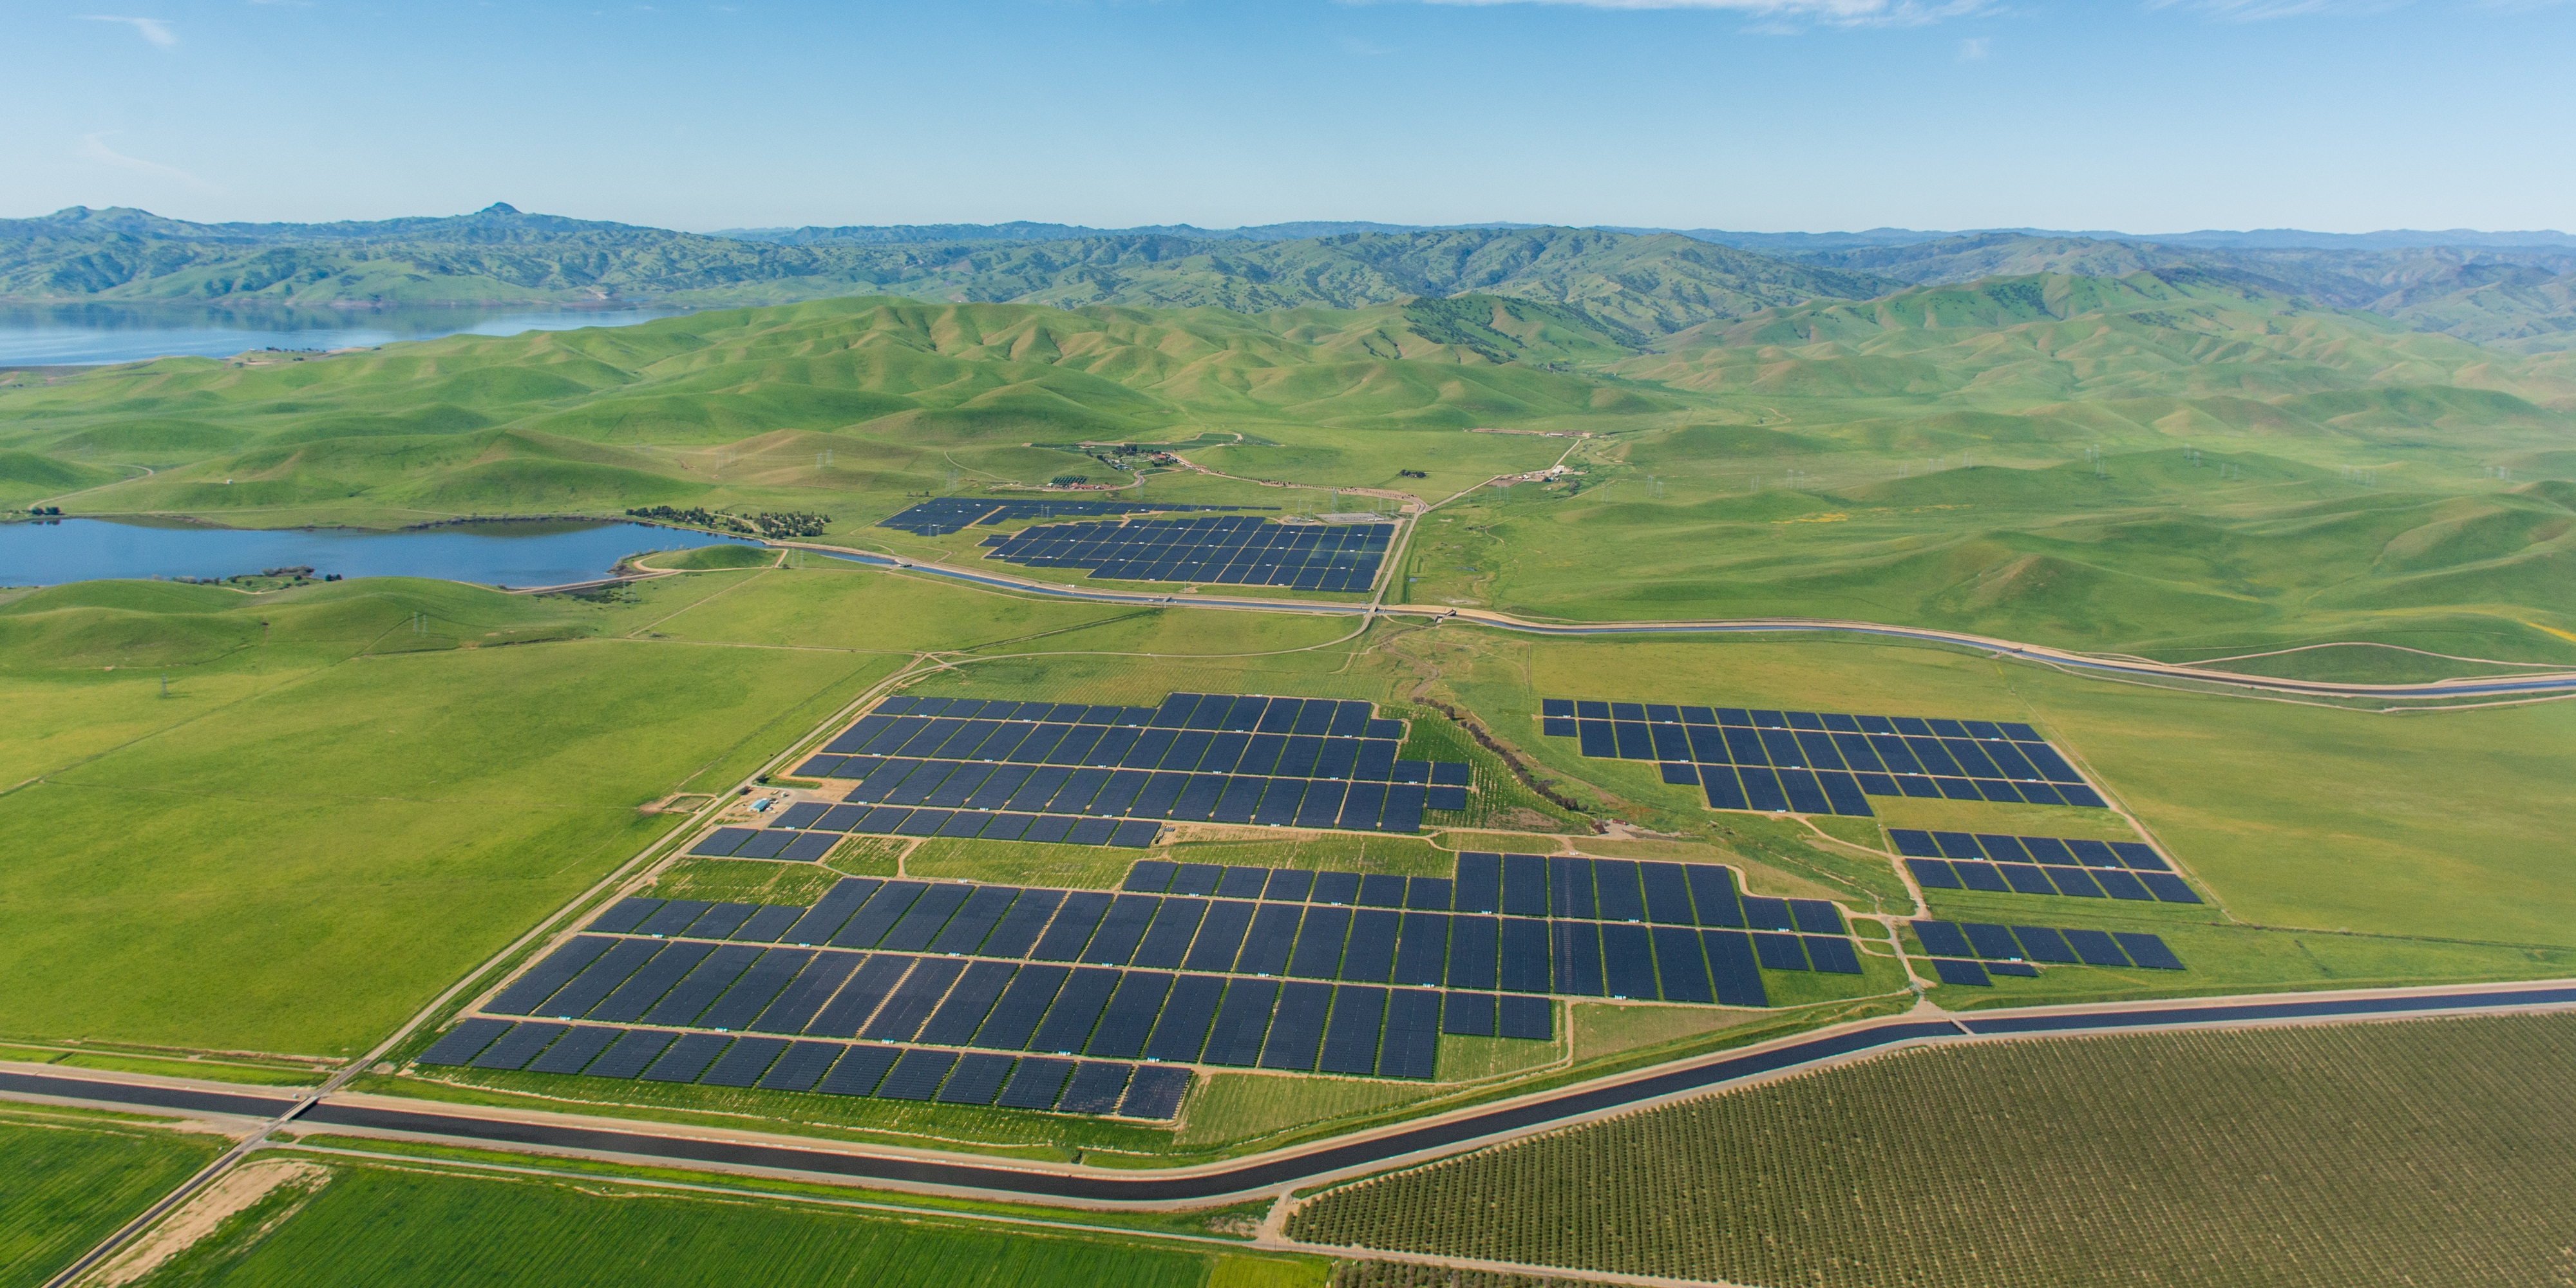 SunPower's 135 MW Quinto solar panel project in Merced County, Calif, providing energy to Southern California Edison.